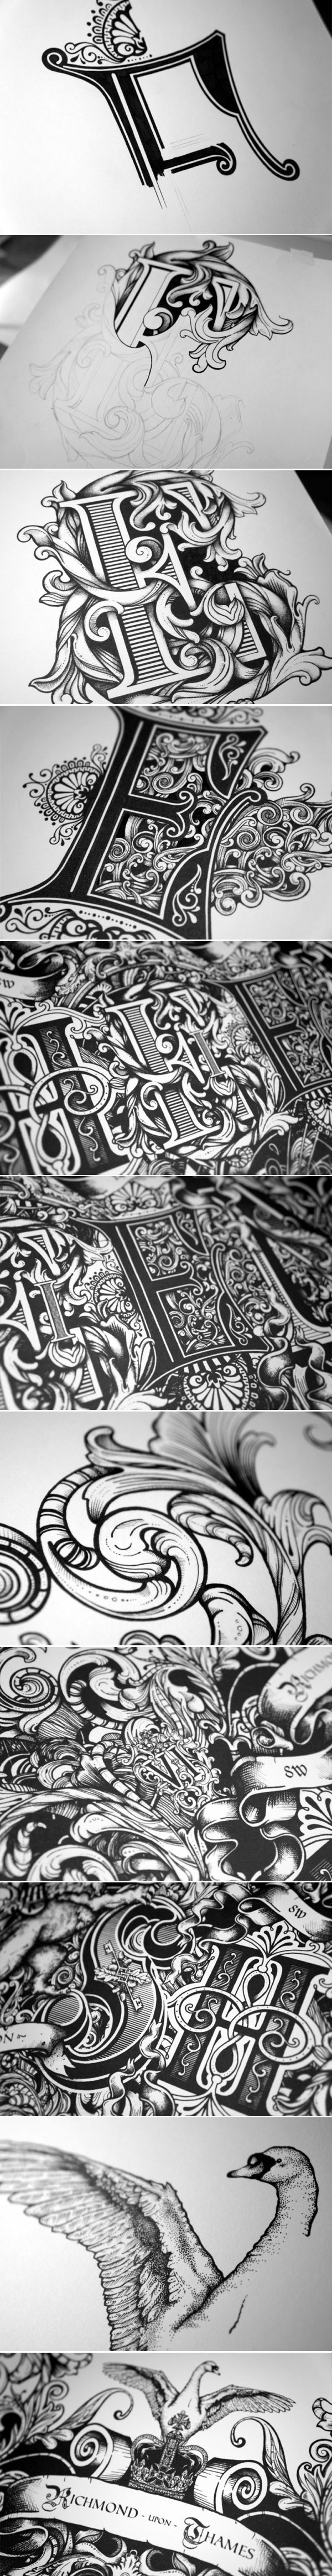 Dazzling hand-drawn combination of illustration and typography by Greg Coulton